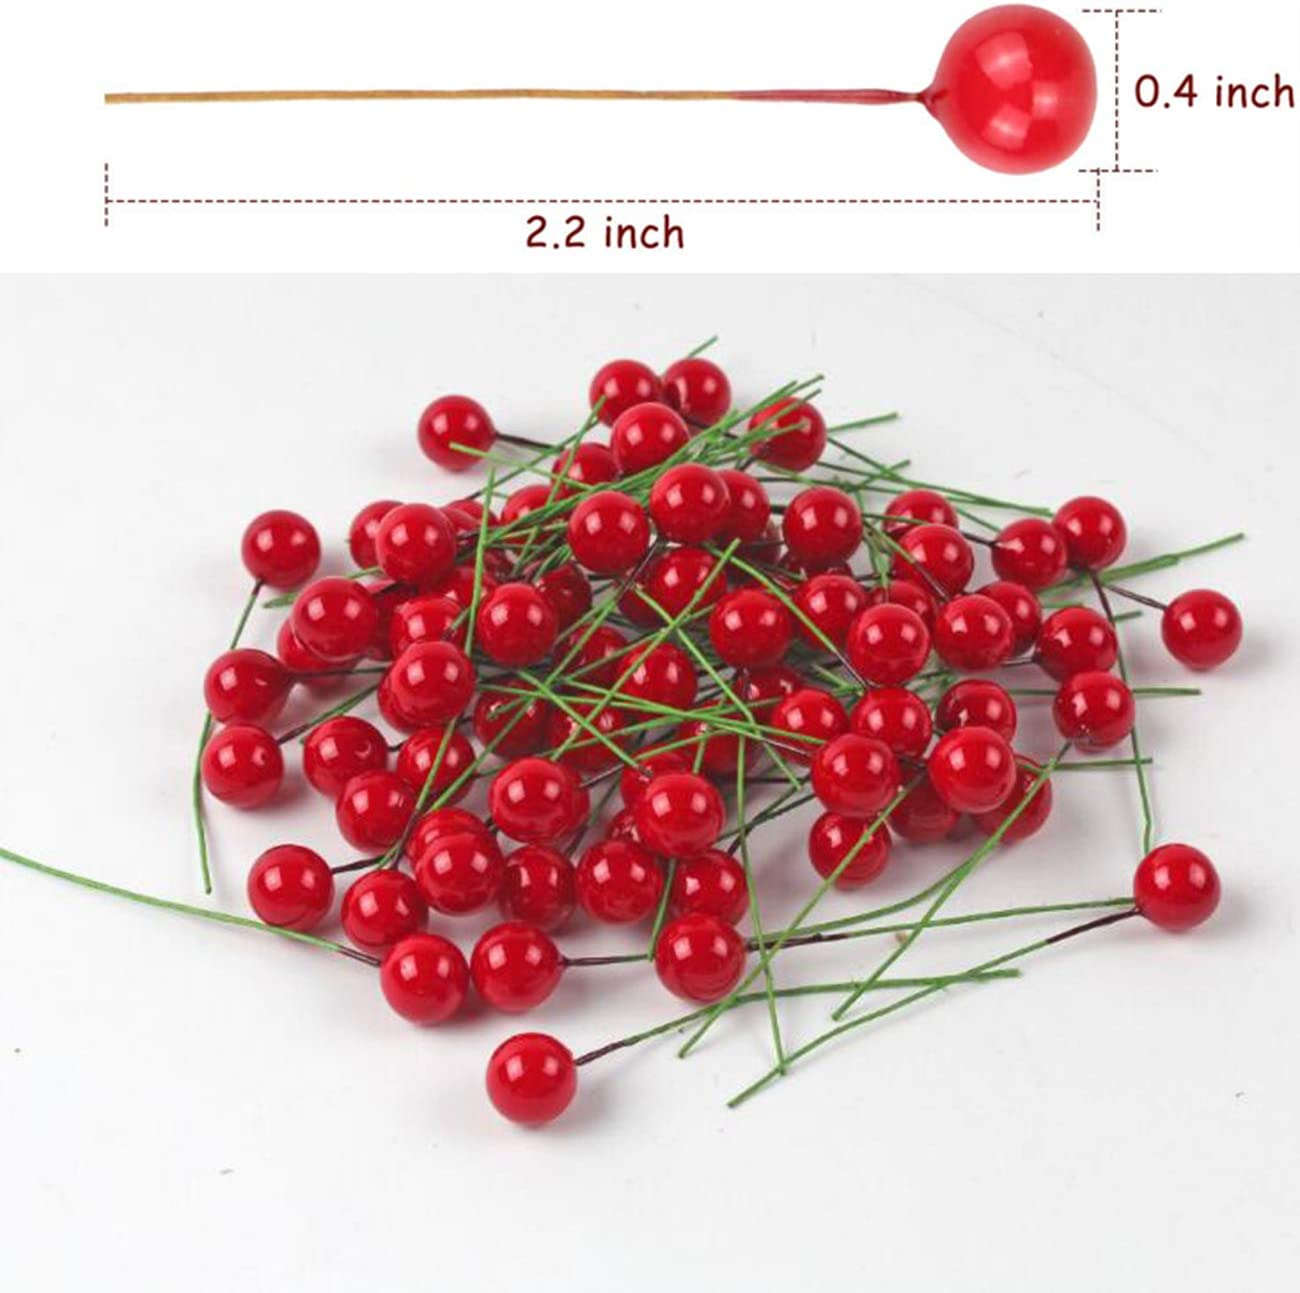 Gold 200 Pieces Mini 10 mm Fake Berries Decor on Wire for Christmas Tree Decorations Faux Greenery Decor Berry Garland Flower Wreath DIY Crafts Use Artificial Holly Berries